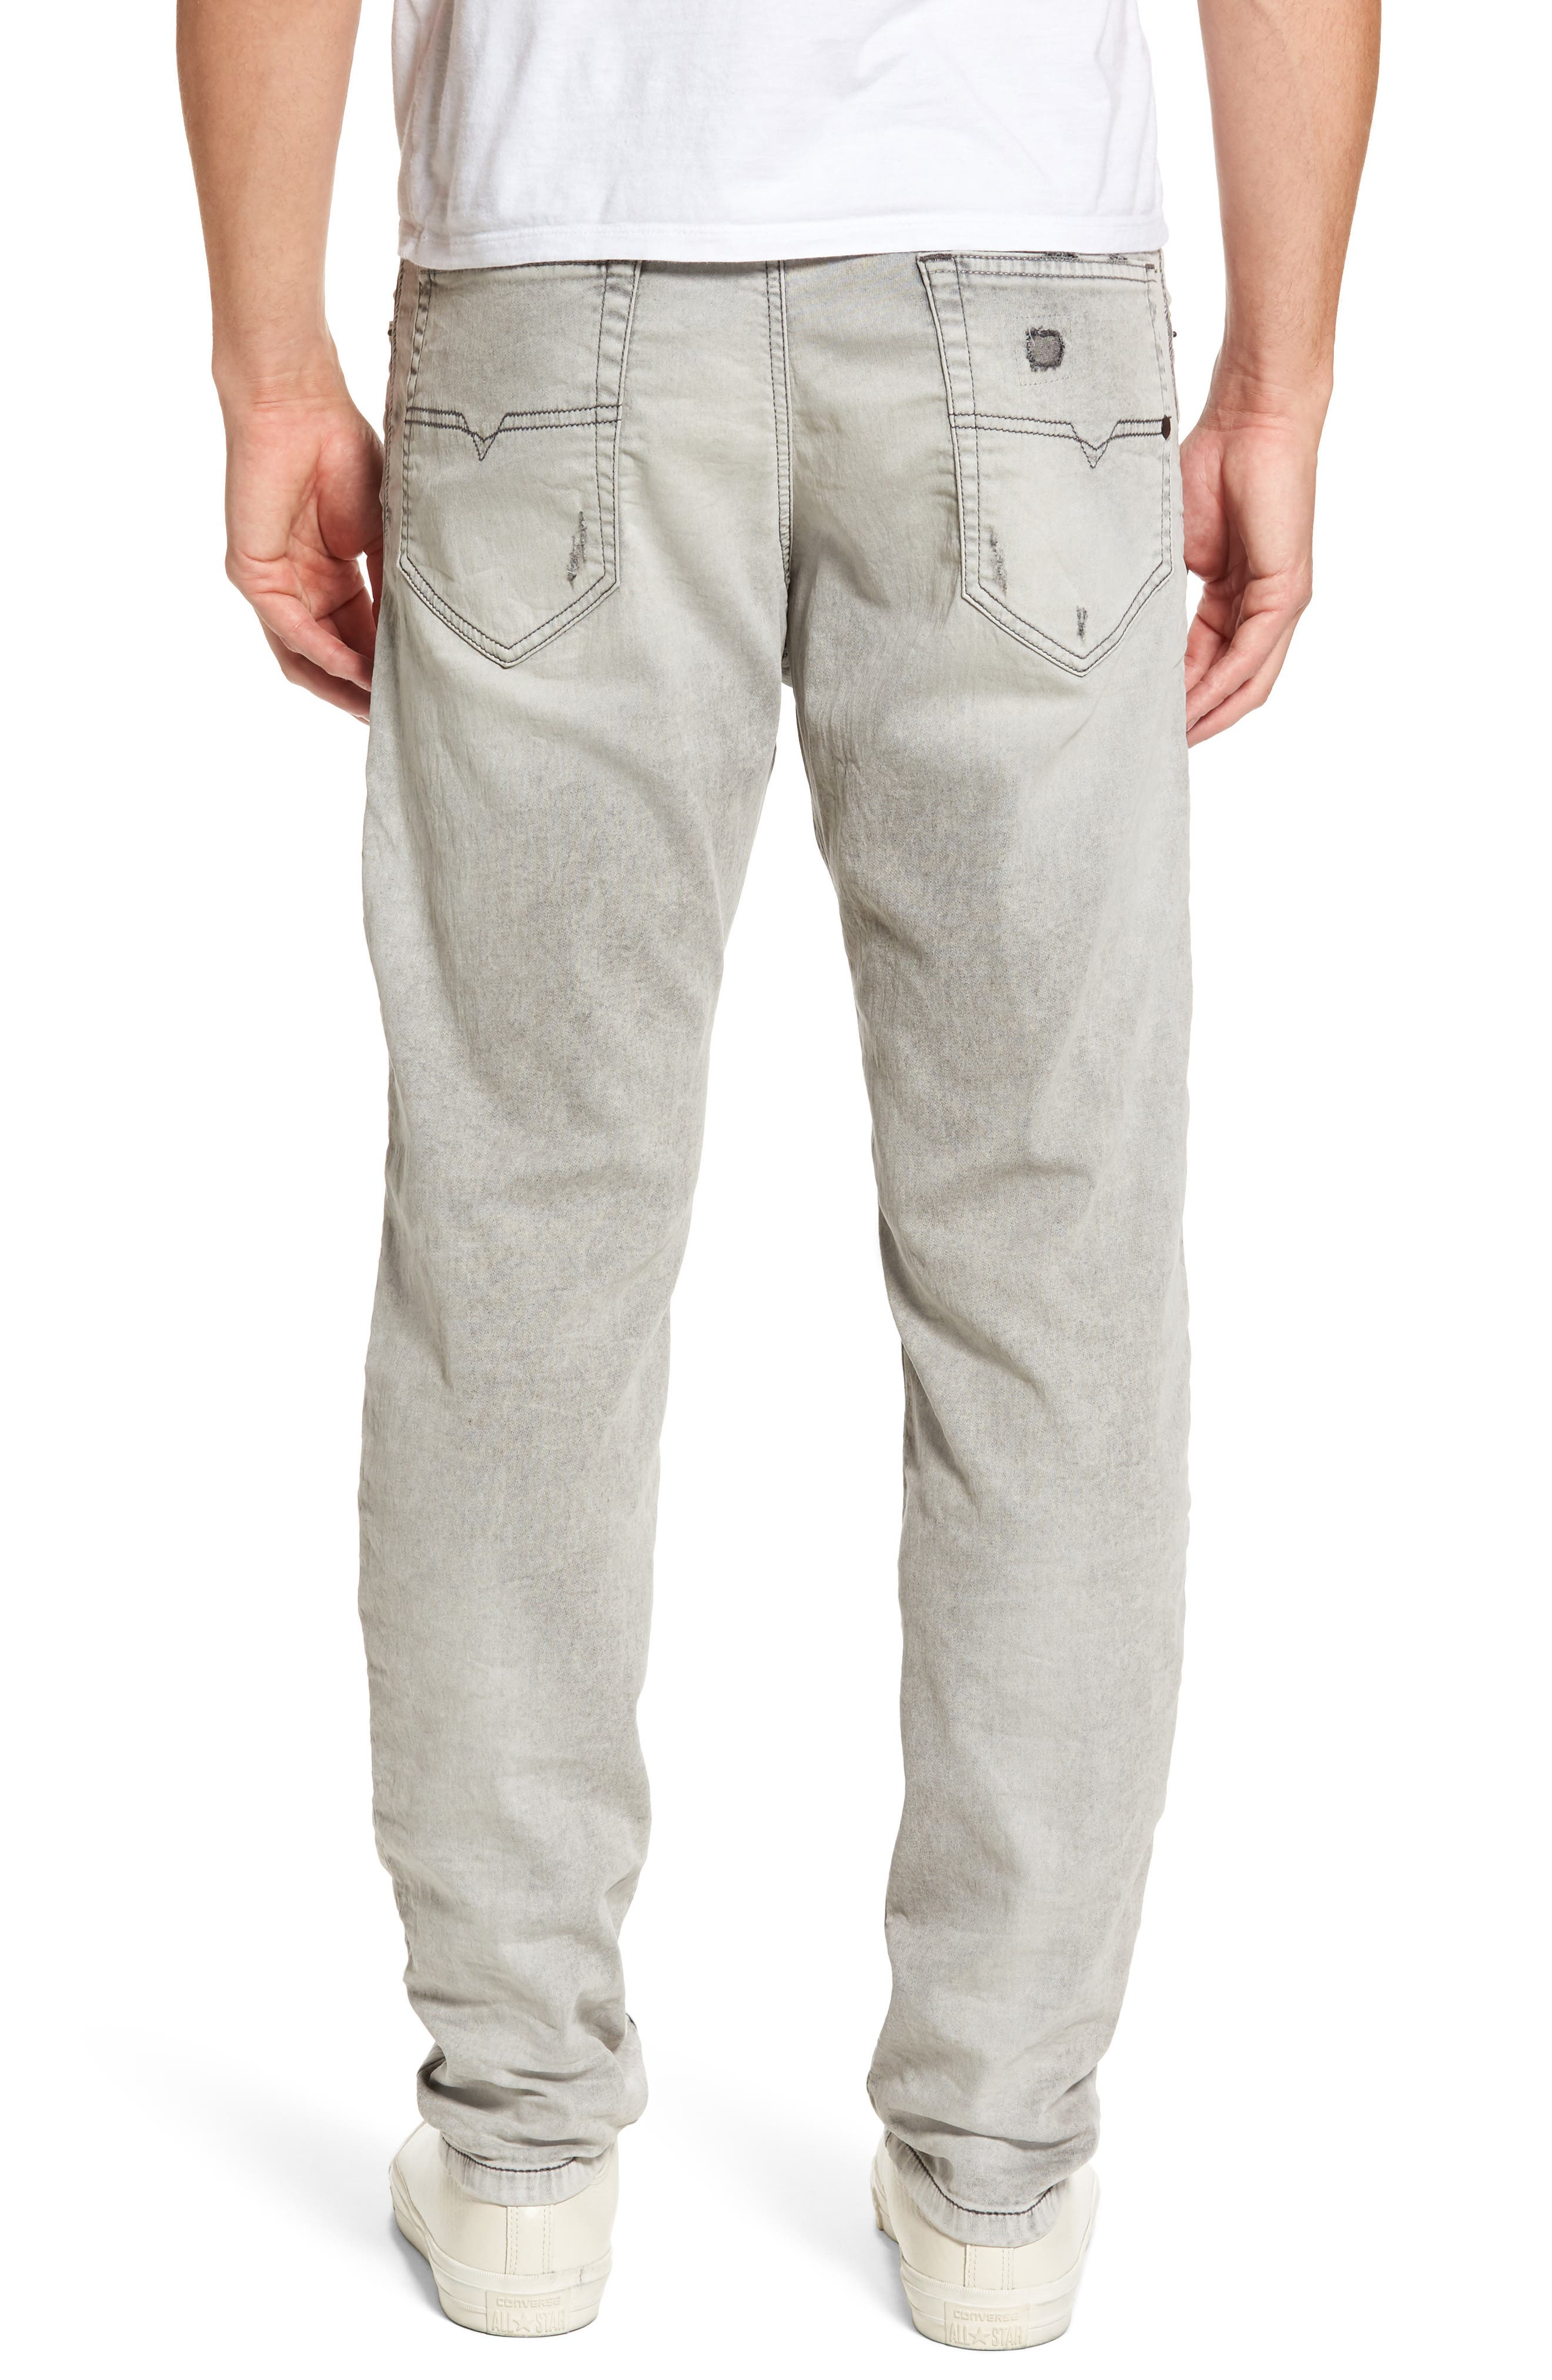 Narrot Slouchy Skinny Fit Jeans,                             Alternate thumbnail 2, color,                             0684M